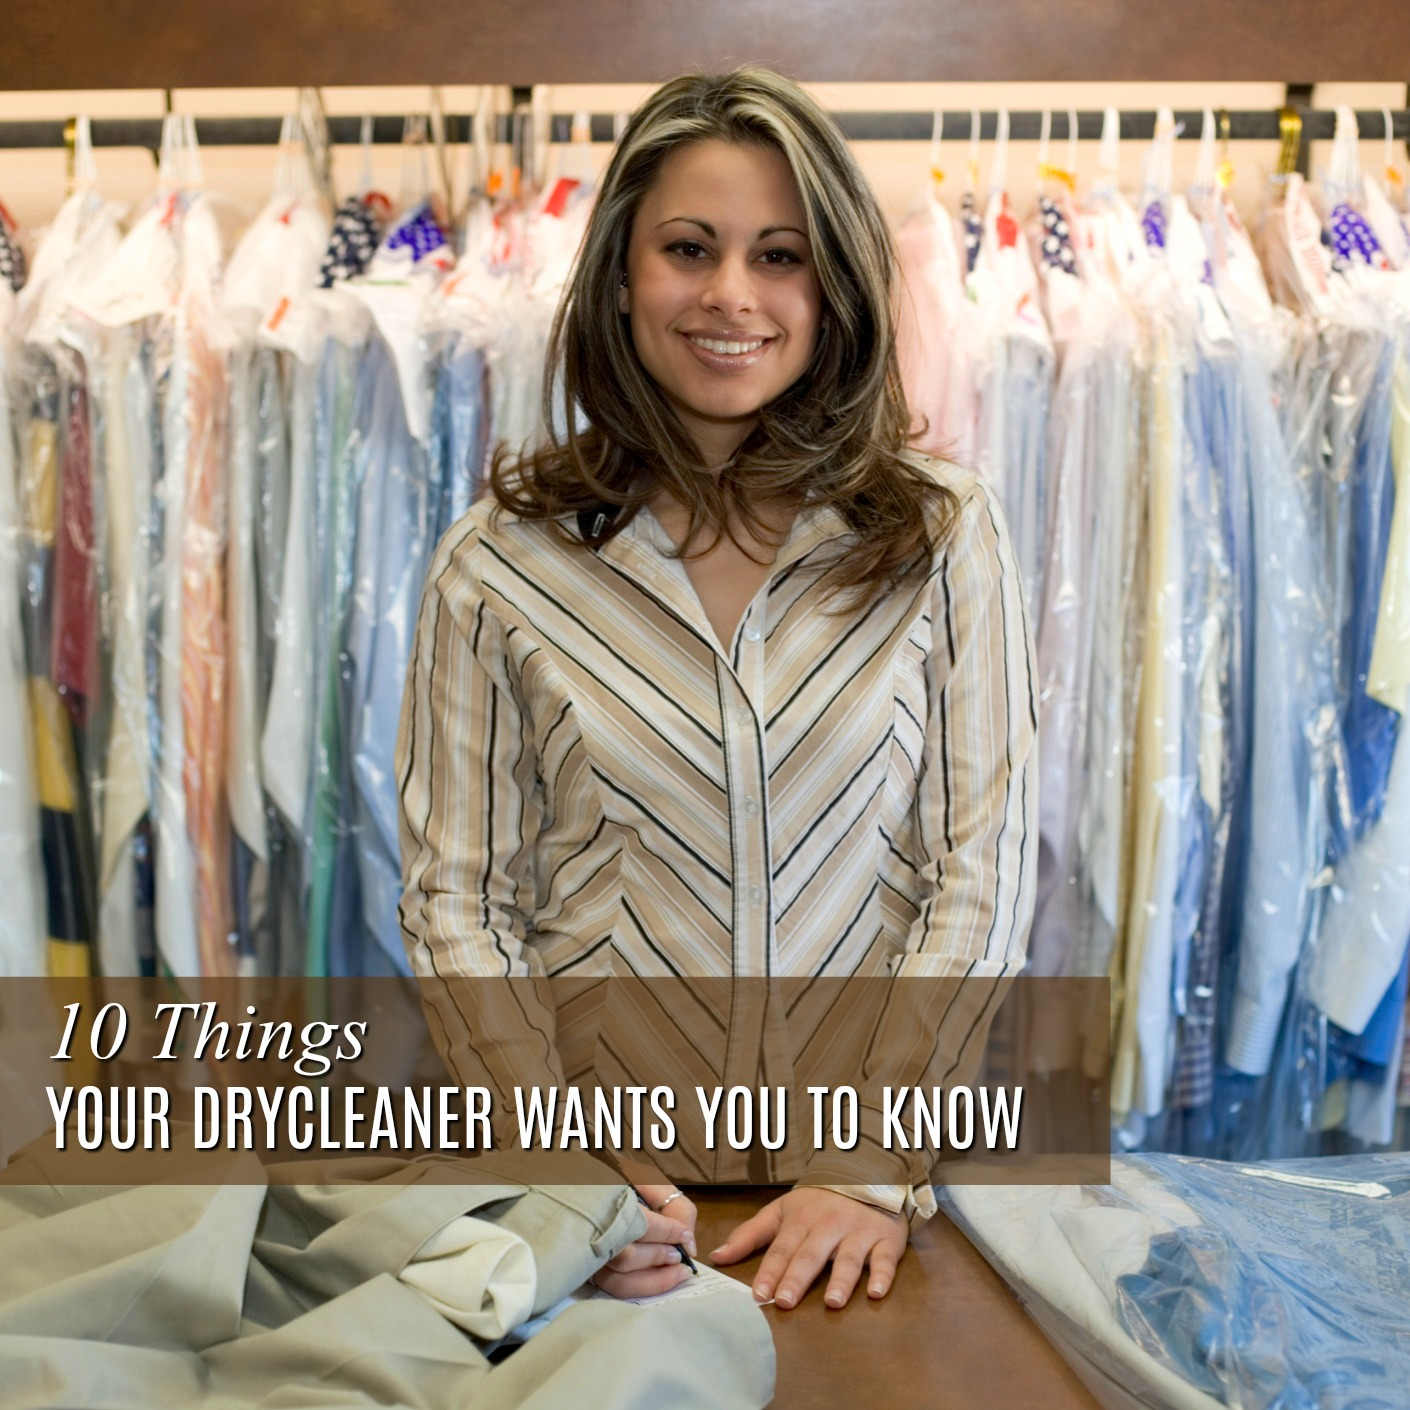 Dry Cleaners, Dry Cleaning, Fashion Tips, Style Tips, Caring for your clothes, Style Clinic, Ann Reinten, Image Innovators, Image Consultant Training